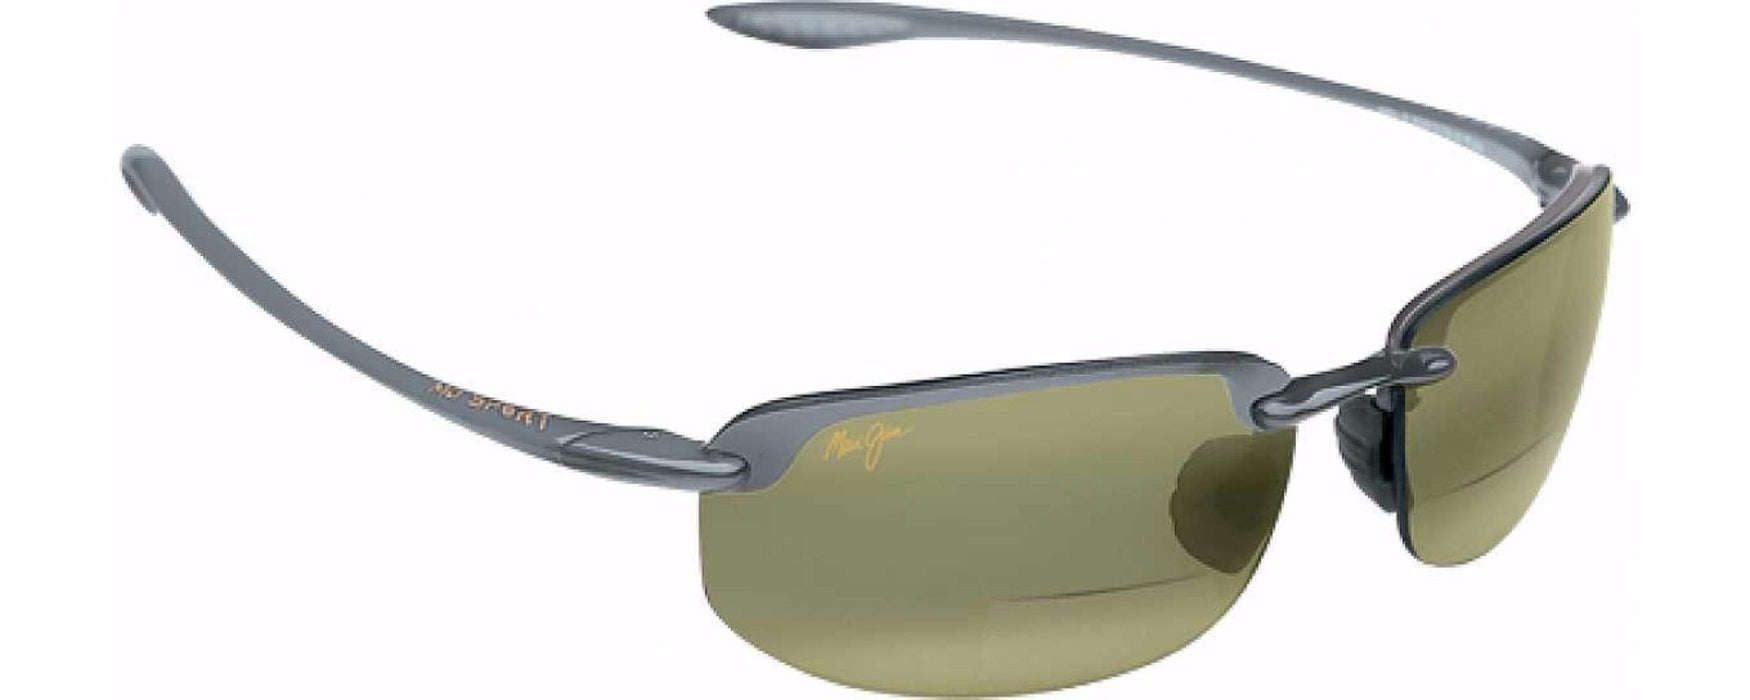 ce8f812cf83 Maui Jim Ho'okipa Universal Fit BiFocal Sunglass Readers — www.x-wear.com